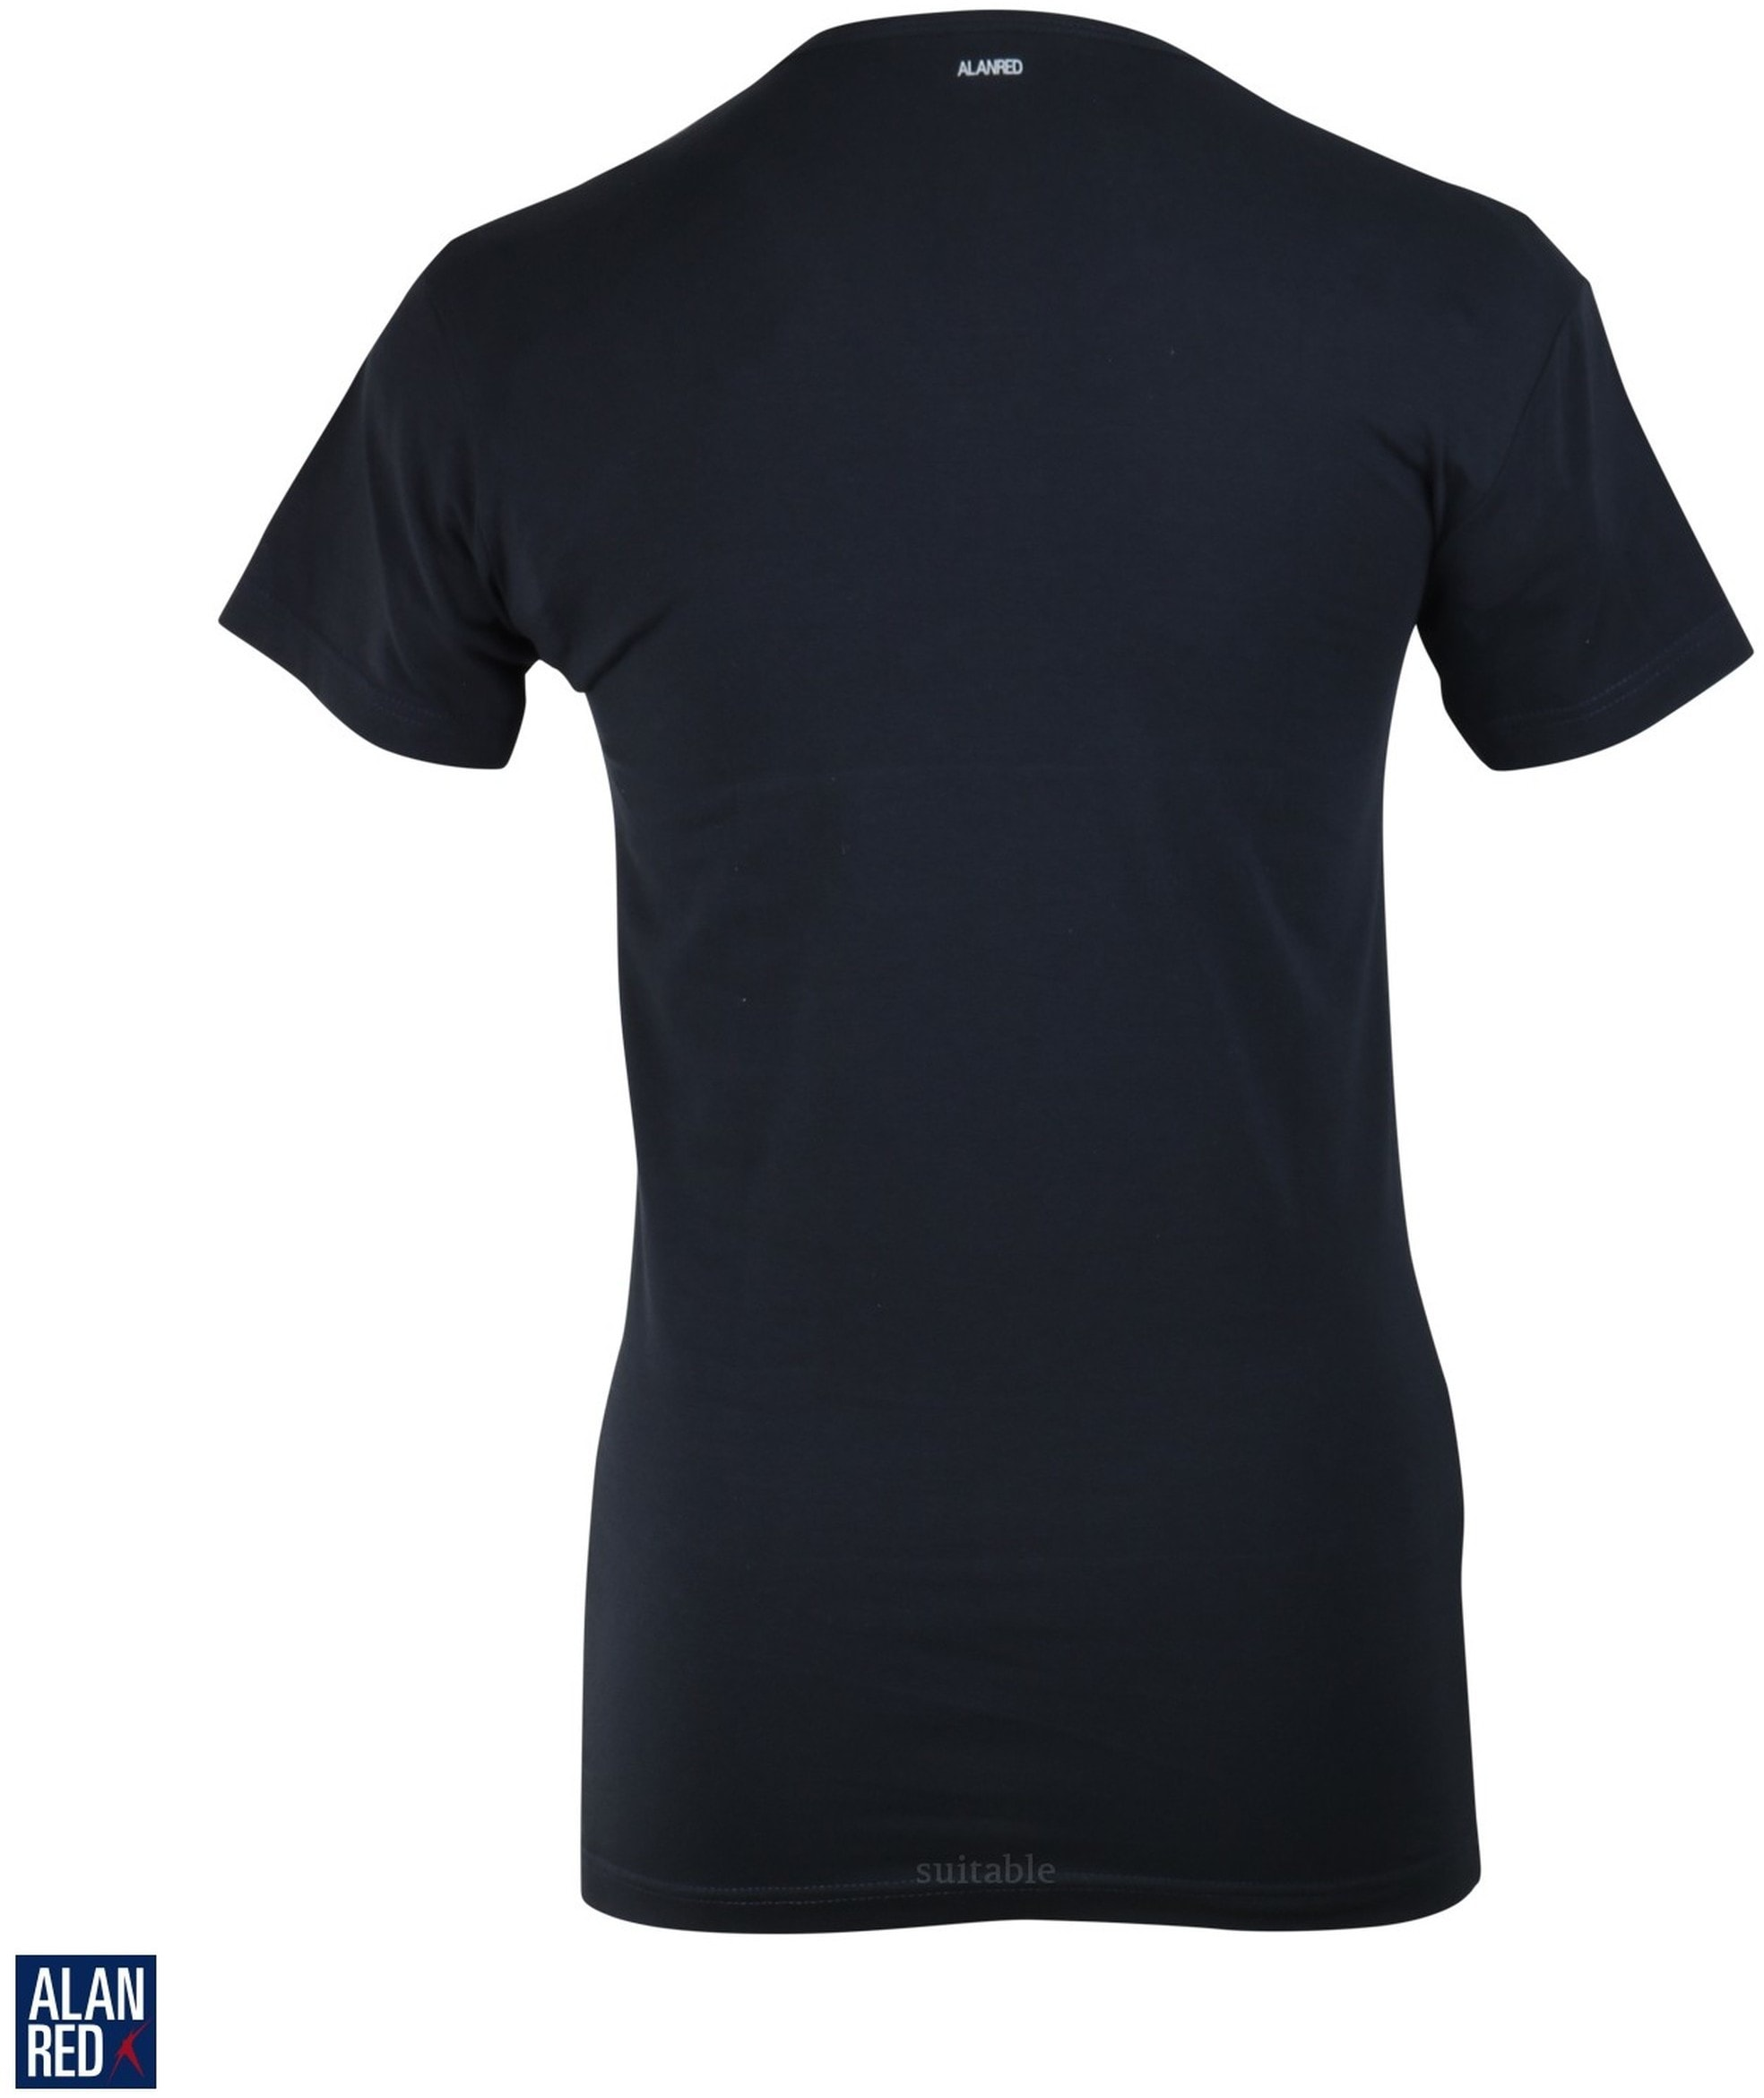 Alan Red Oklahoma T-shirt Stretch Navy (1pack) foto 2